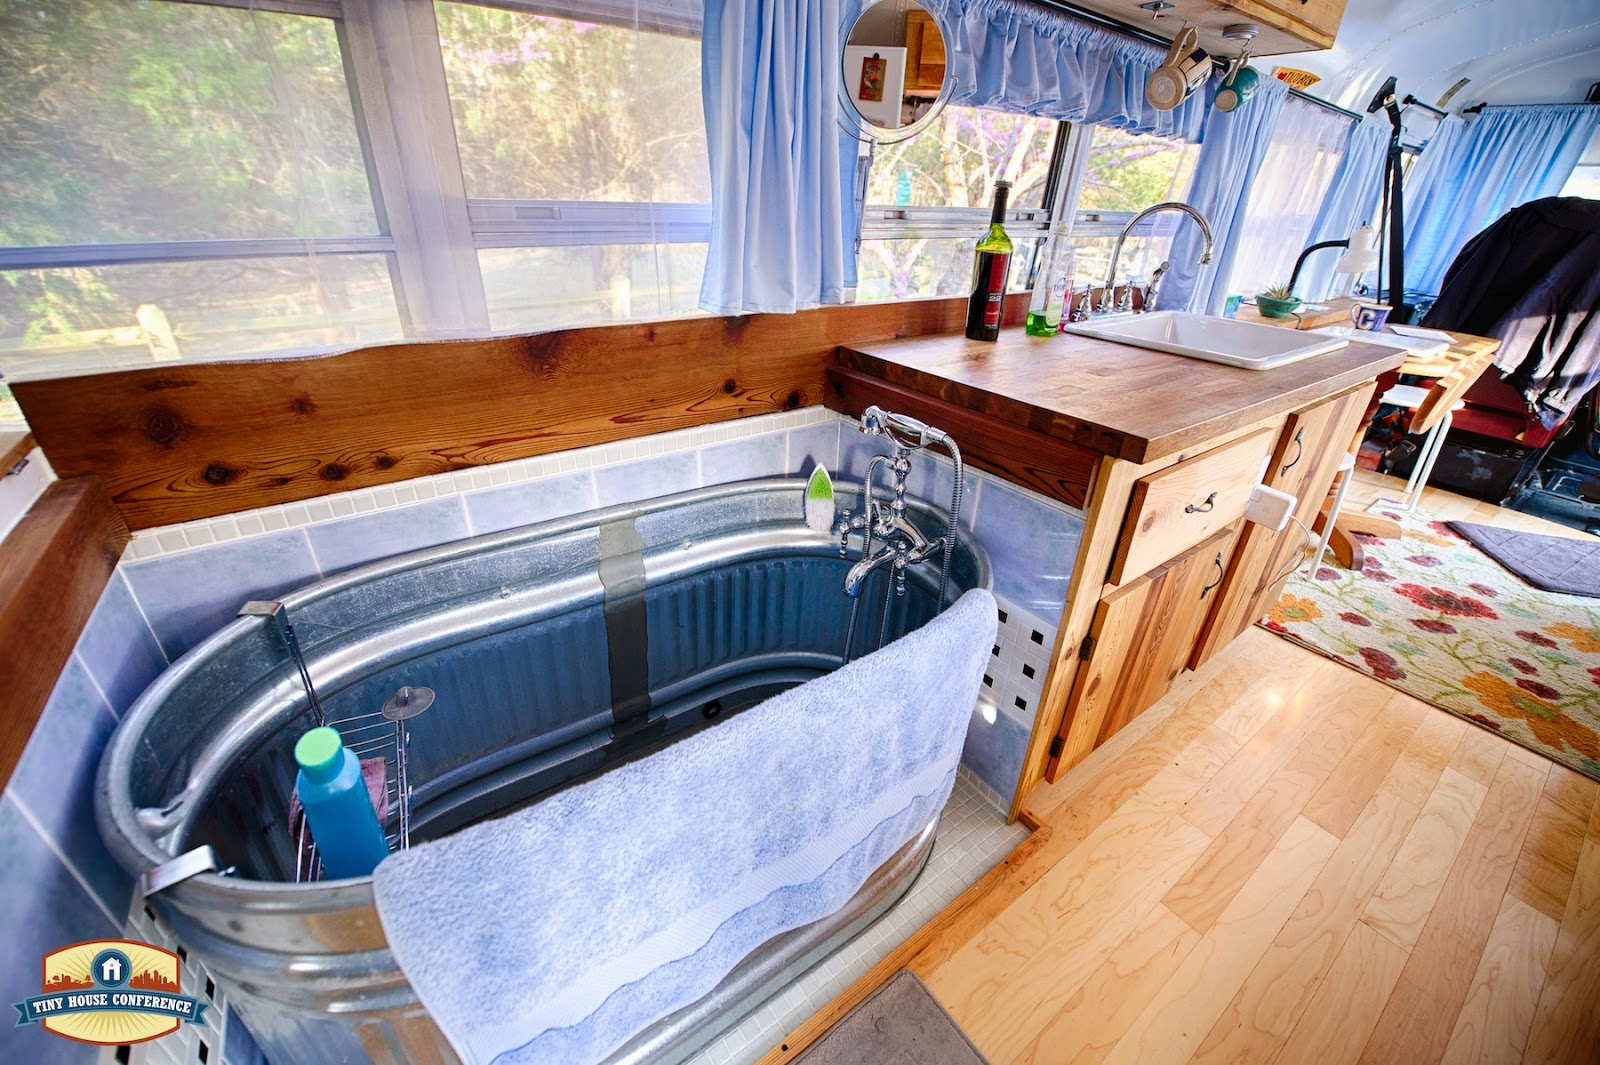 extra deep clawfoot tub. The Tiny House Conference Photos by Christopher Tack Just Right Bus  Living with a Water Trough Bathtub